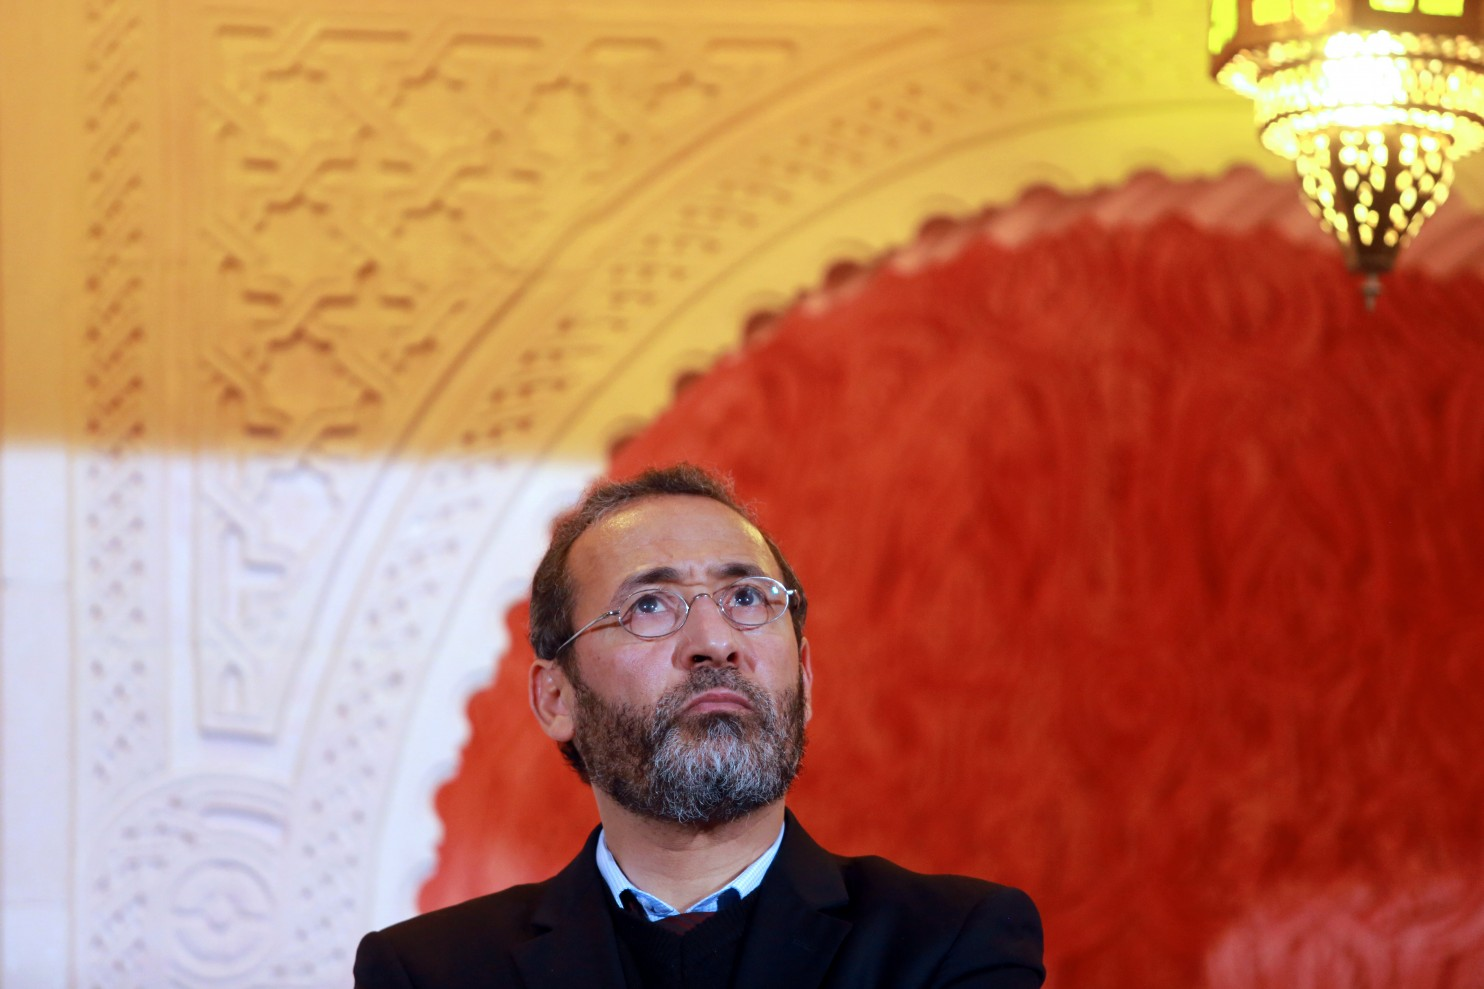 A French imam's argument for why Islam belongs in France